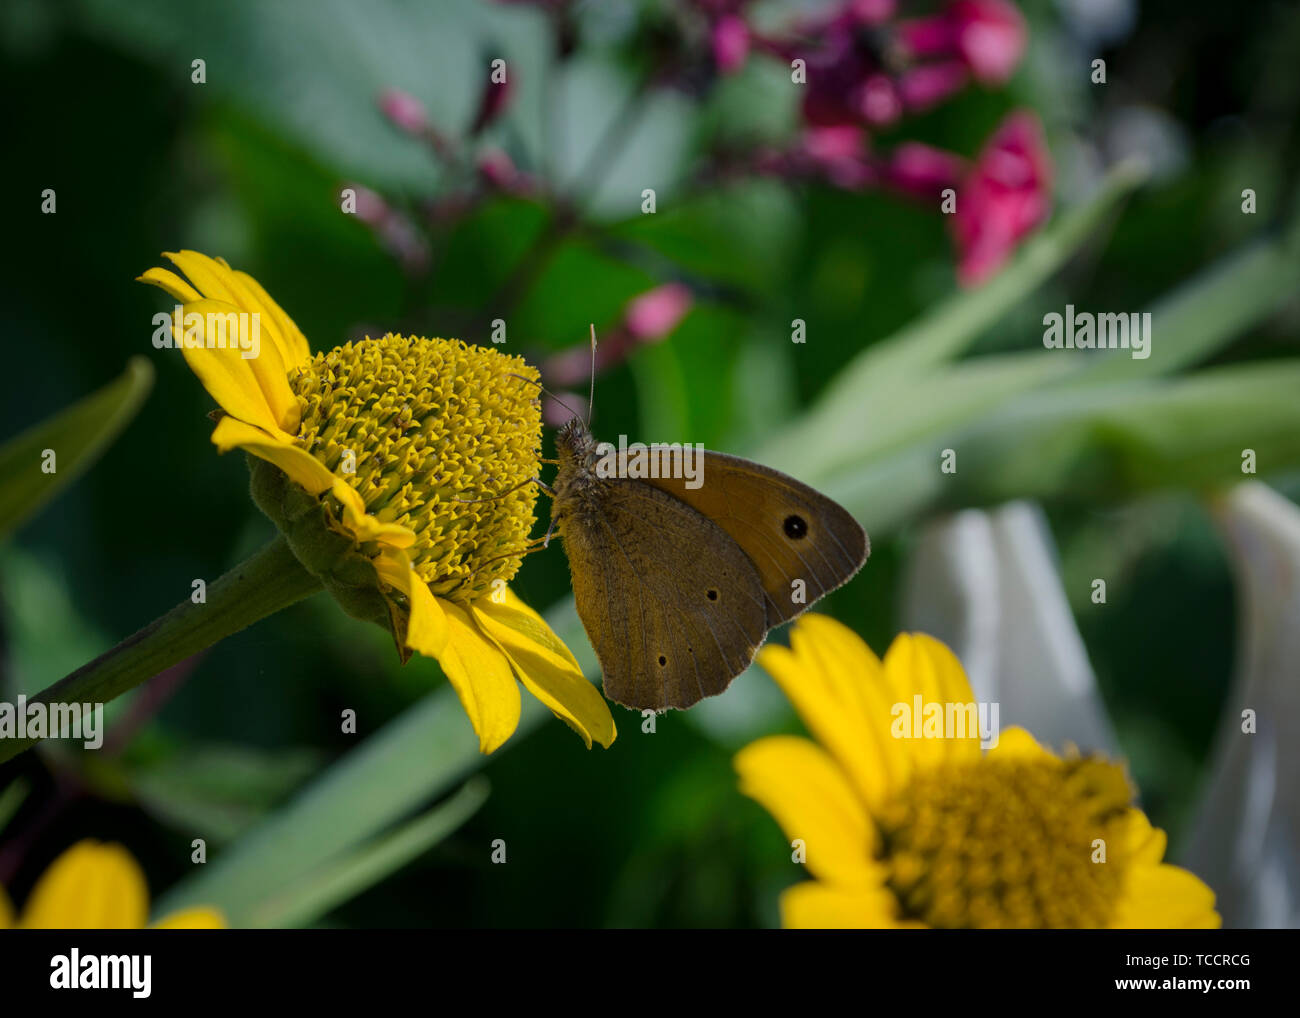 Aphantopus hyperantus butterfly sitting on the yellow flowers of sunflower aster family, Chrysopsis known as golden asters or Heterotheca villosa - Stock Image